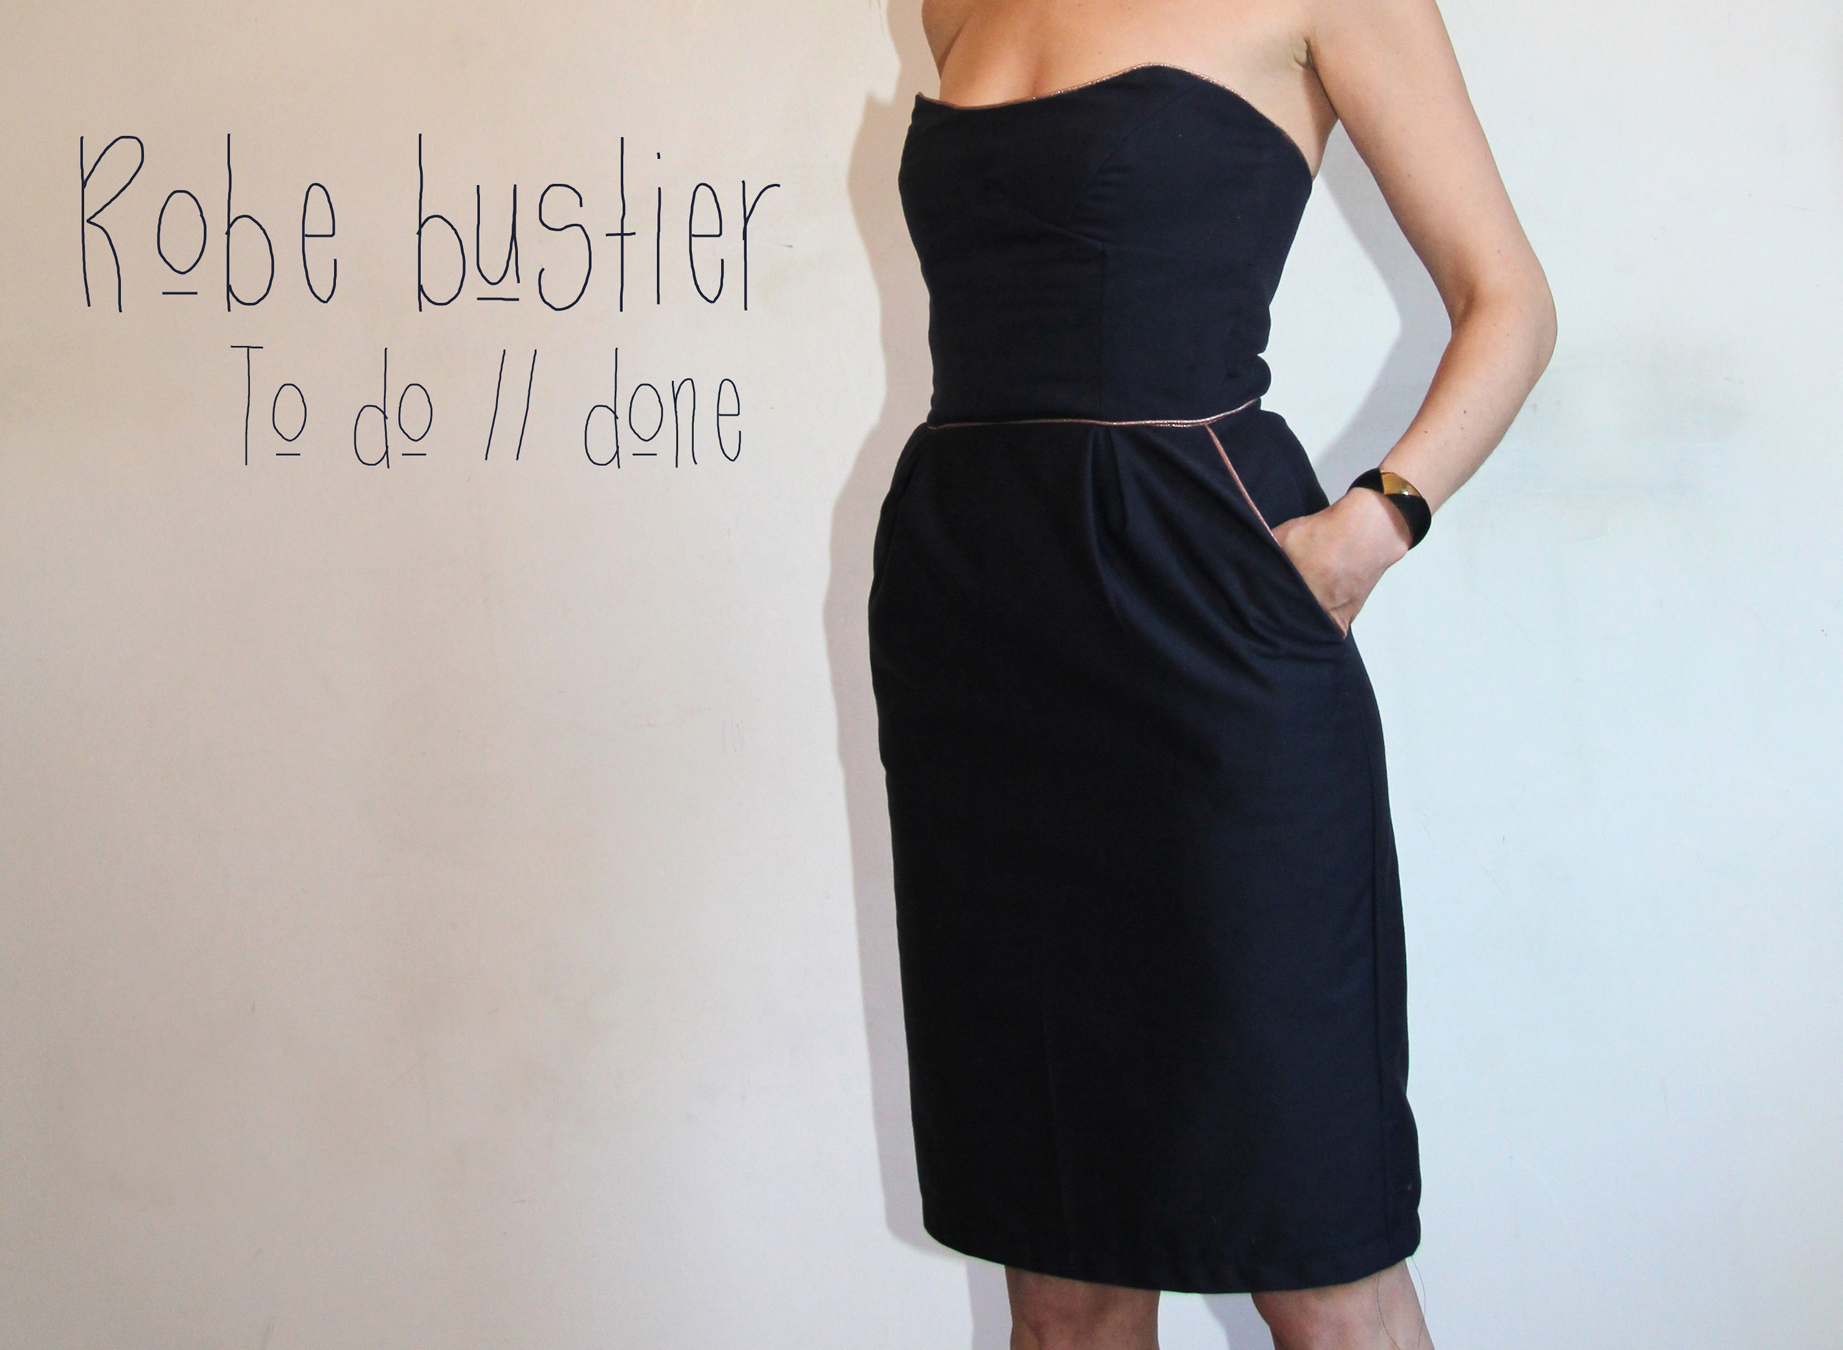 Berühmt Robe bustier // To do : done | RA82